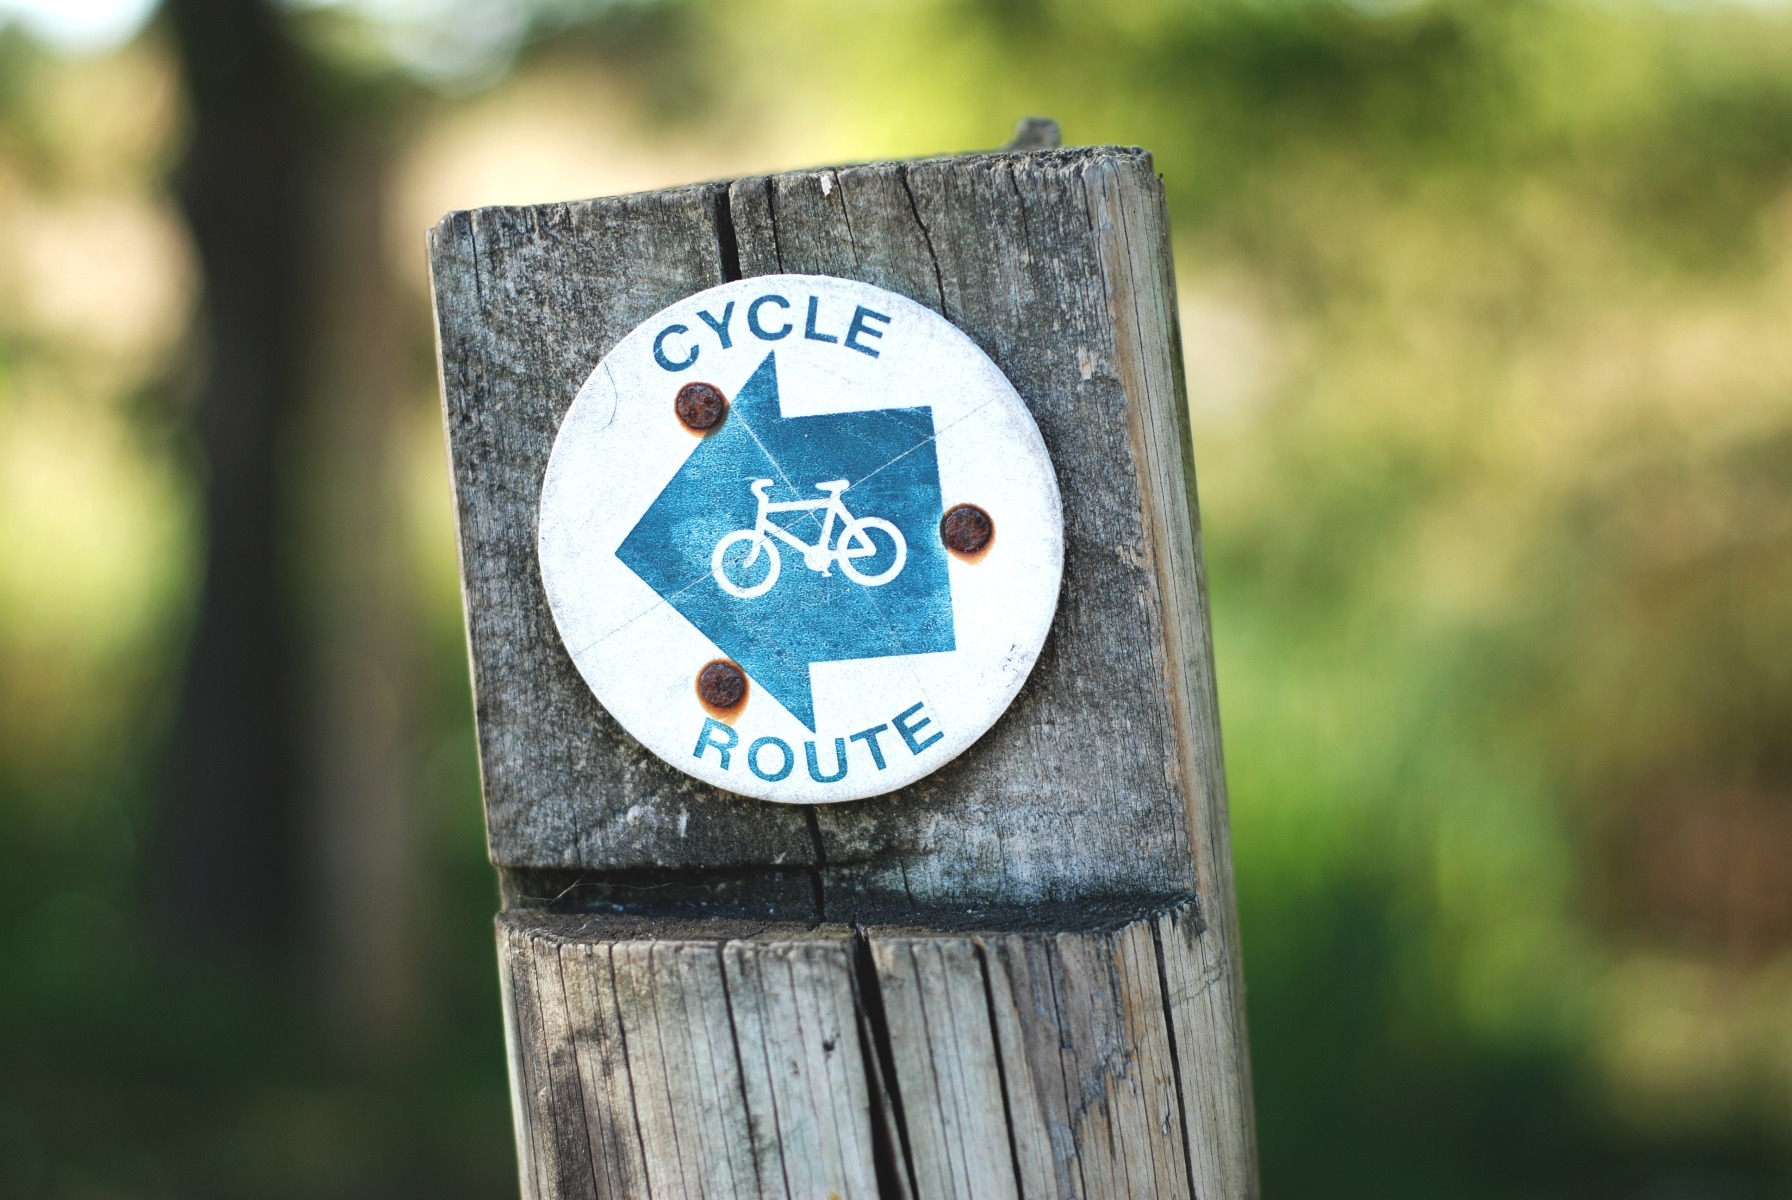 public sign for a cycle route